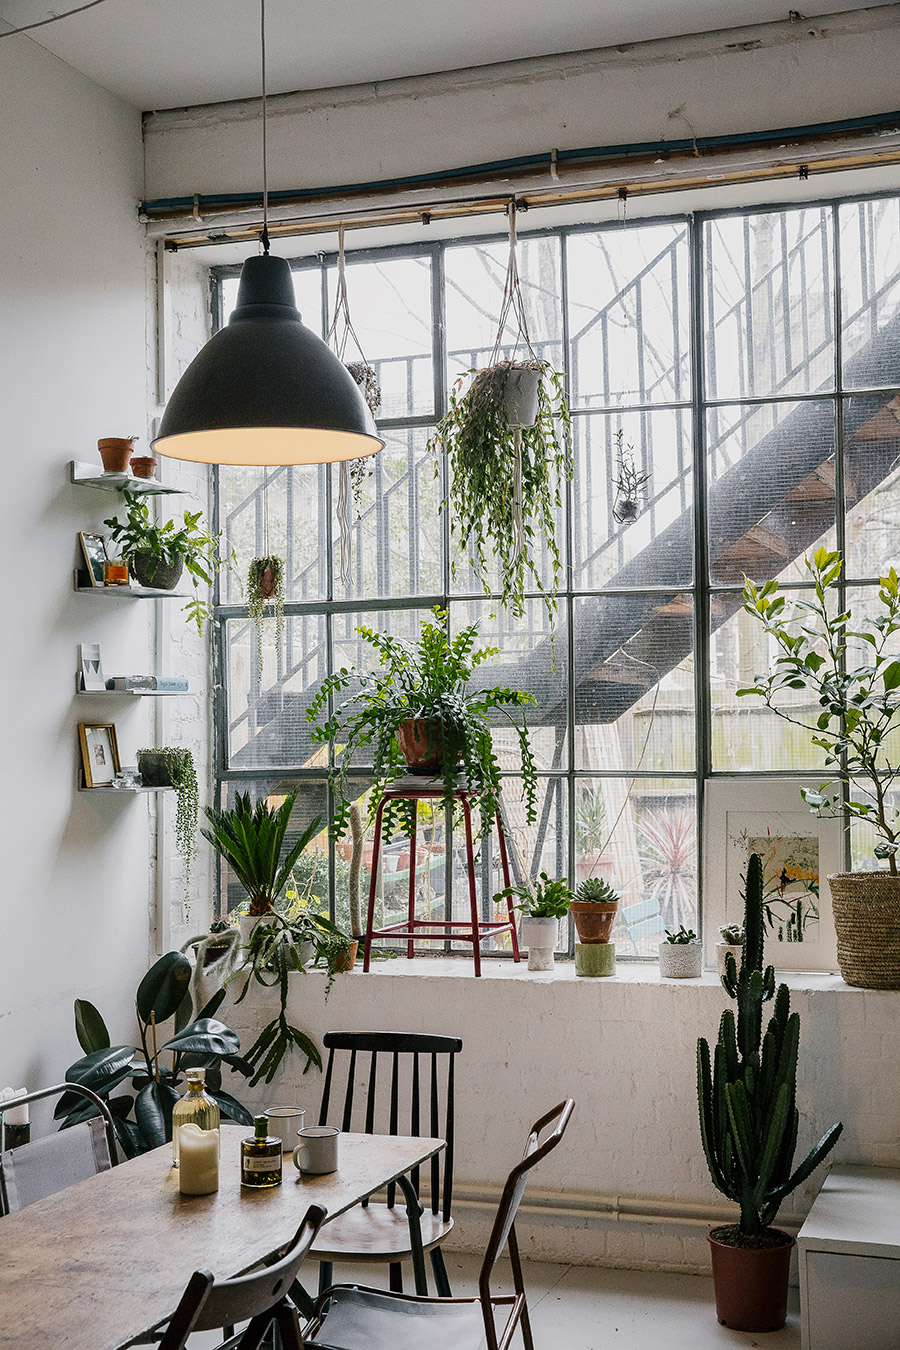 Interior Designs With Plants Of Serene Green Interiors House Of Plants Lobster And Swan